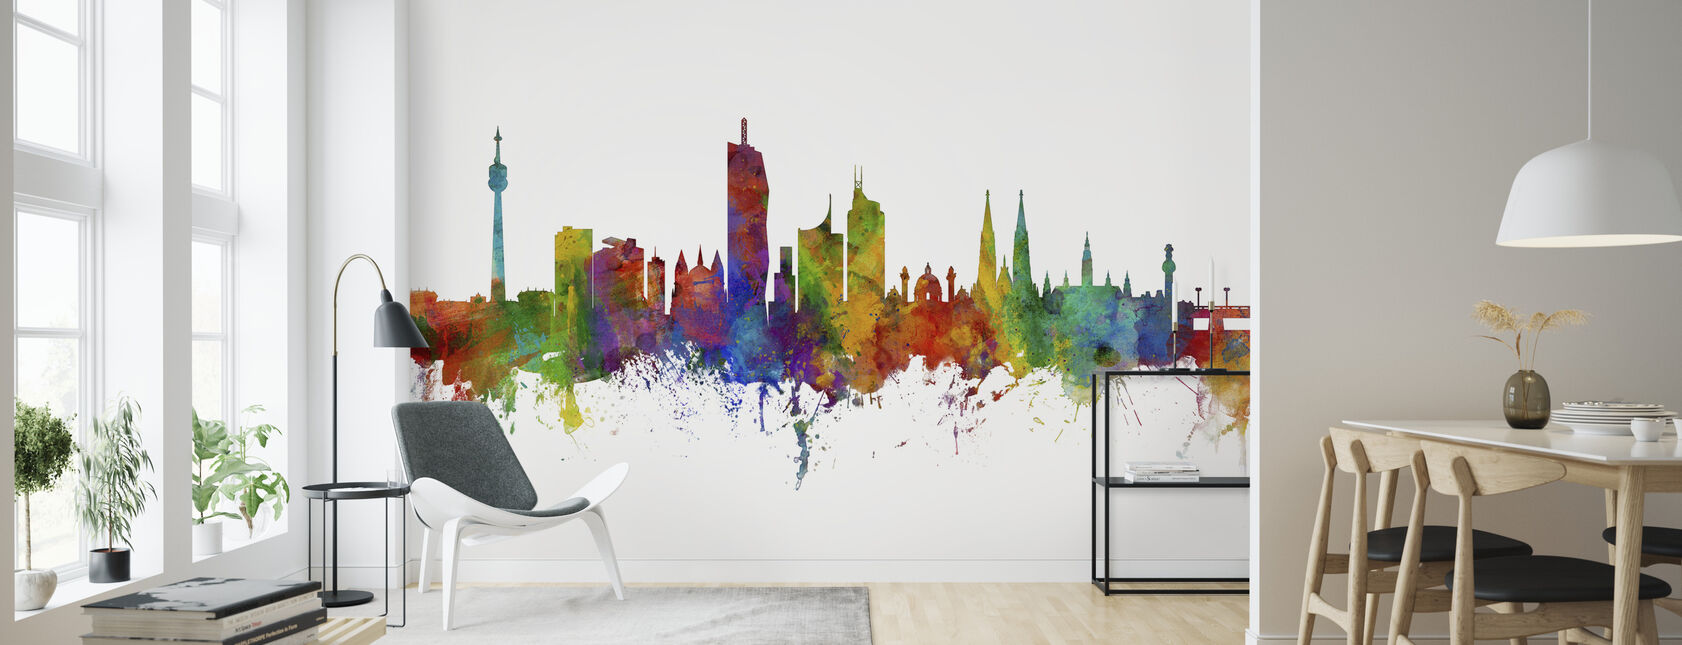 Vienna Skyline - Wallpaper - Living Room